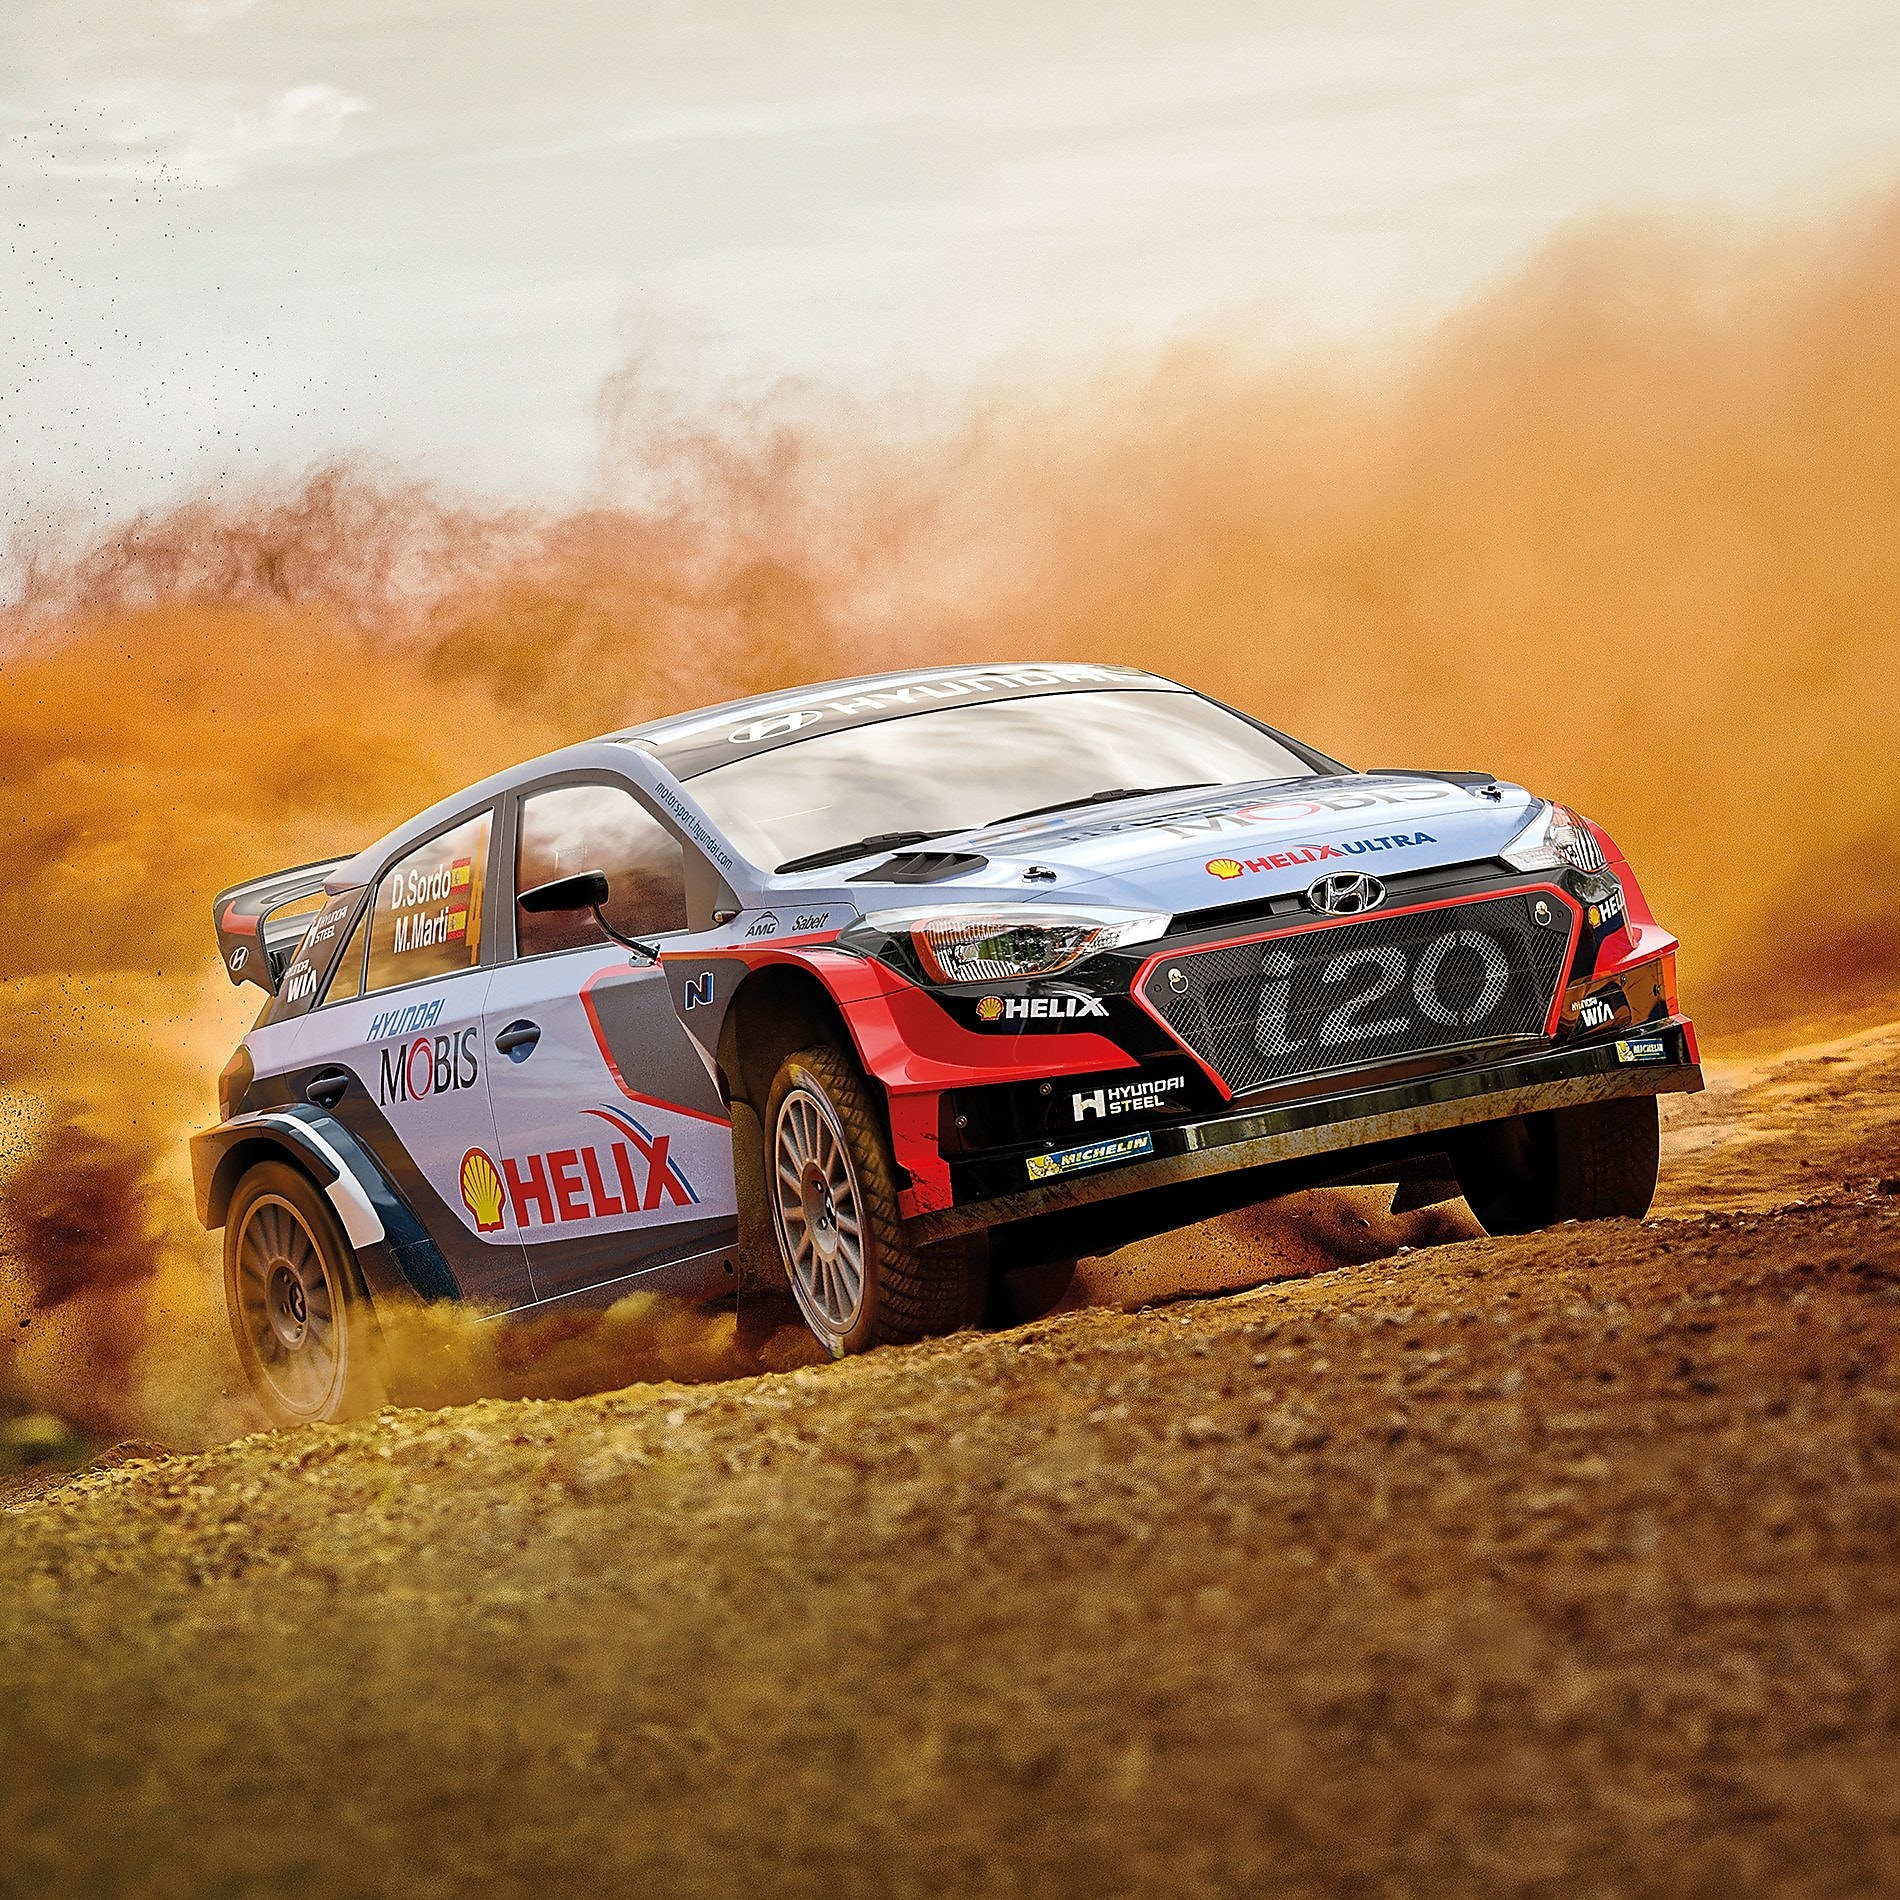 A Hyundai Motorsport car kicks up a cloud of dust on a dirt race track, exemplifying the great performance of using Shell Helix Ultra in extreme environments